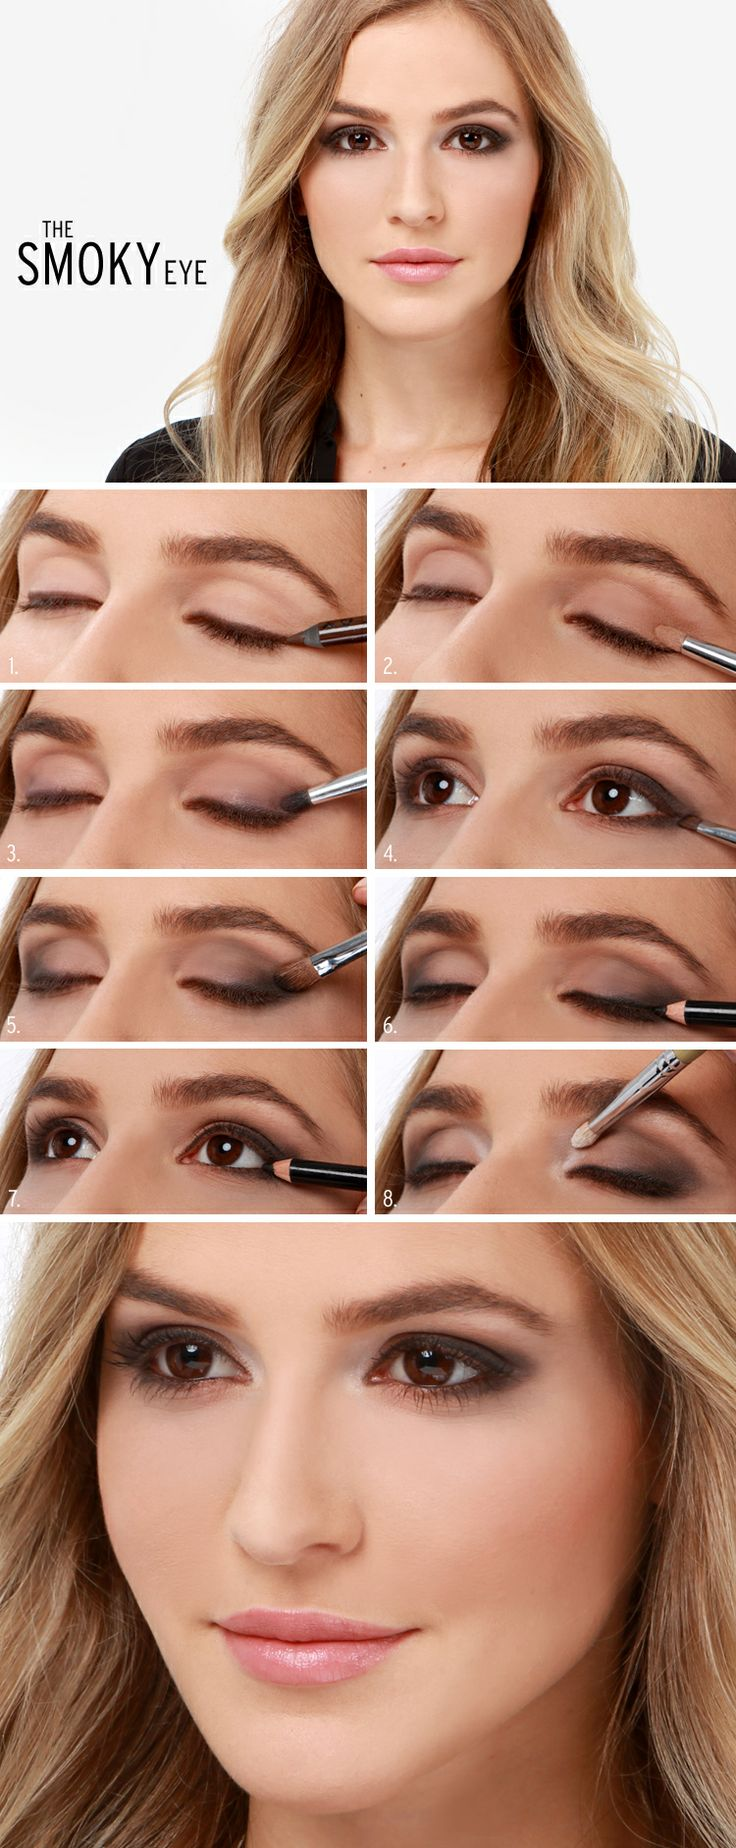 Makeup Tutorial Youtube: 11Perfect Smoky Eye Makeup Tutorials For Different